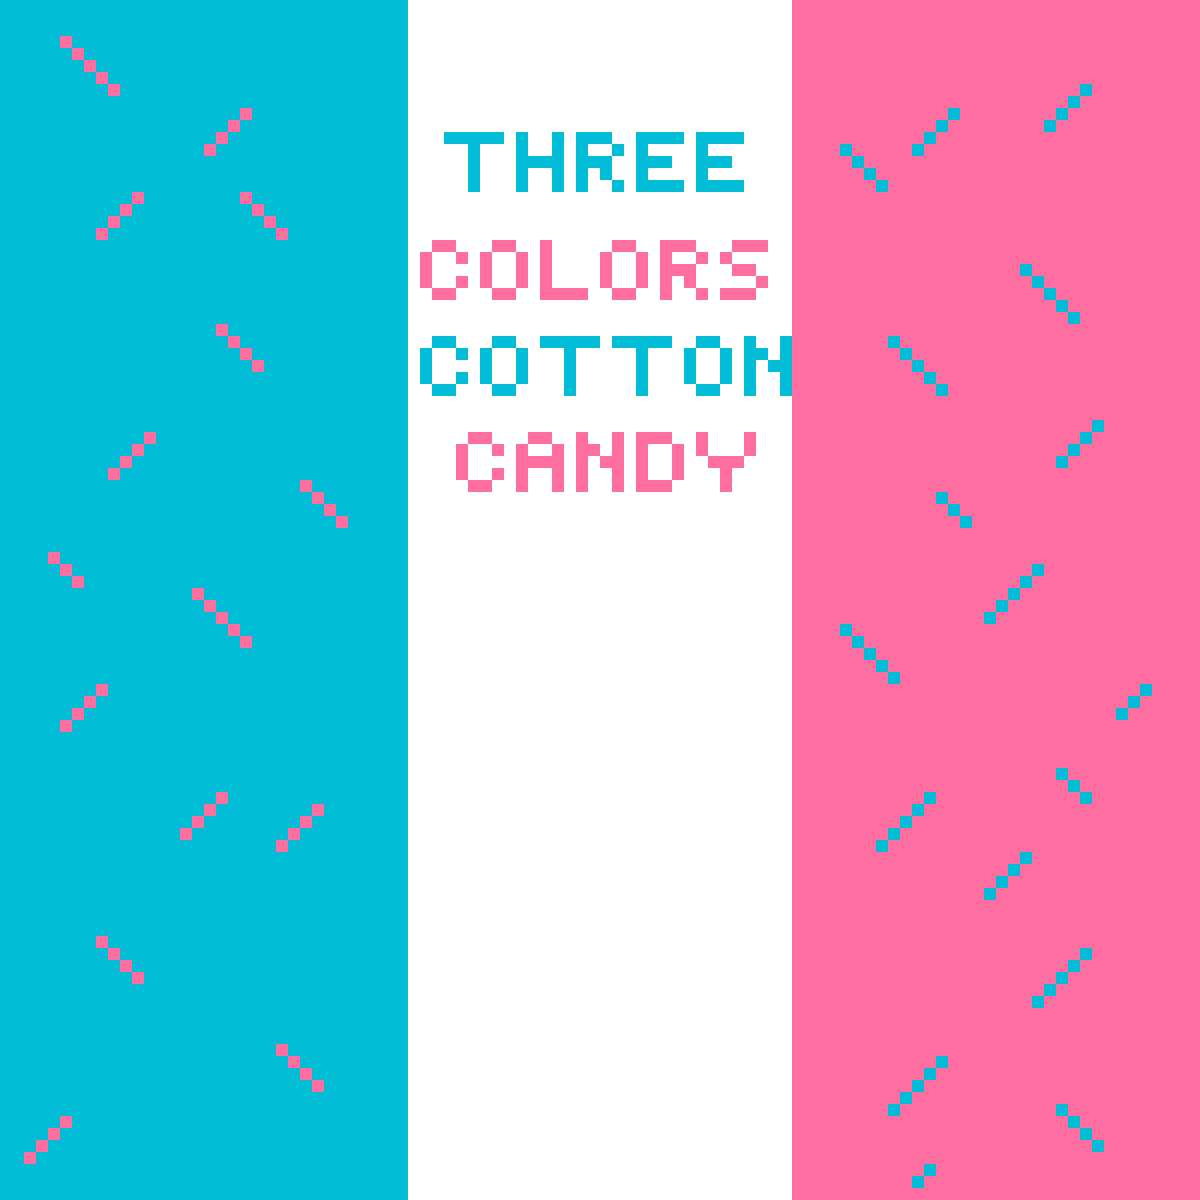 Three colors of COTTON CANDY!!!! :D :D :D :D by AbstractTeal